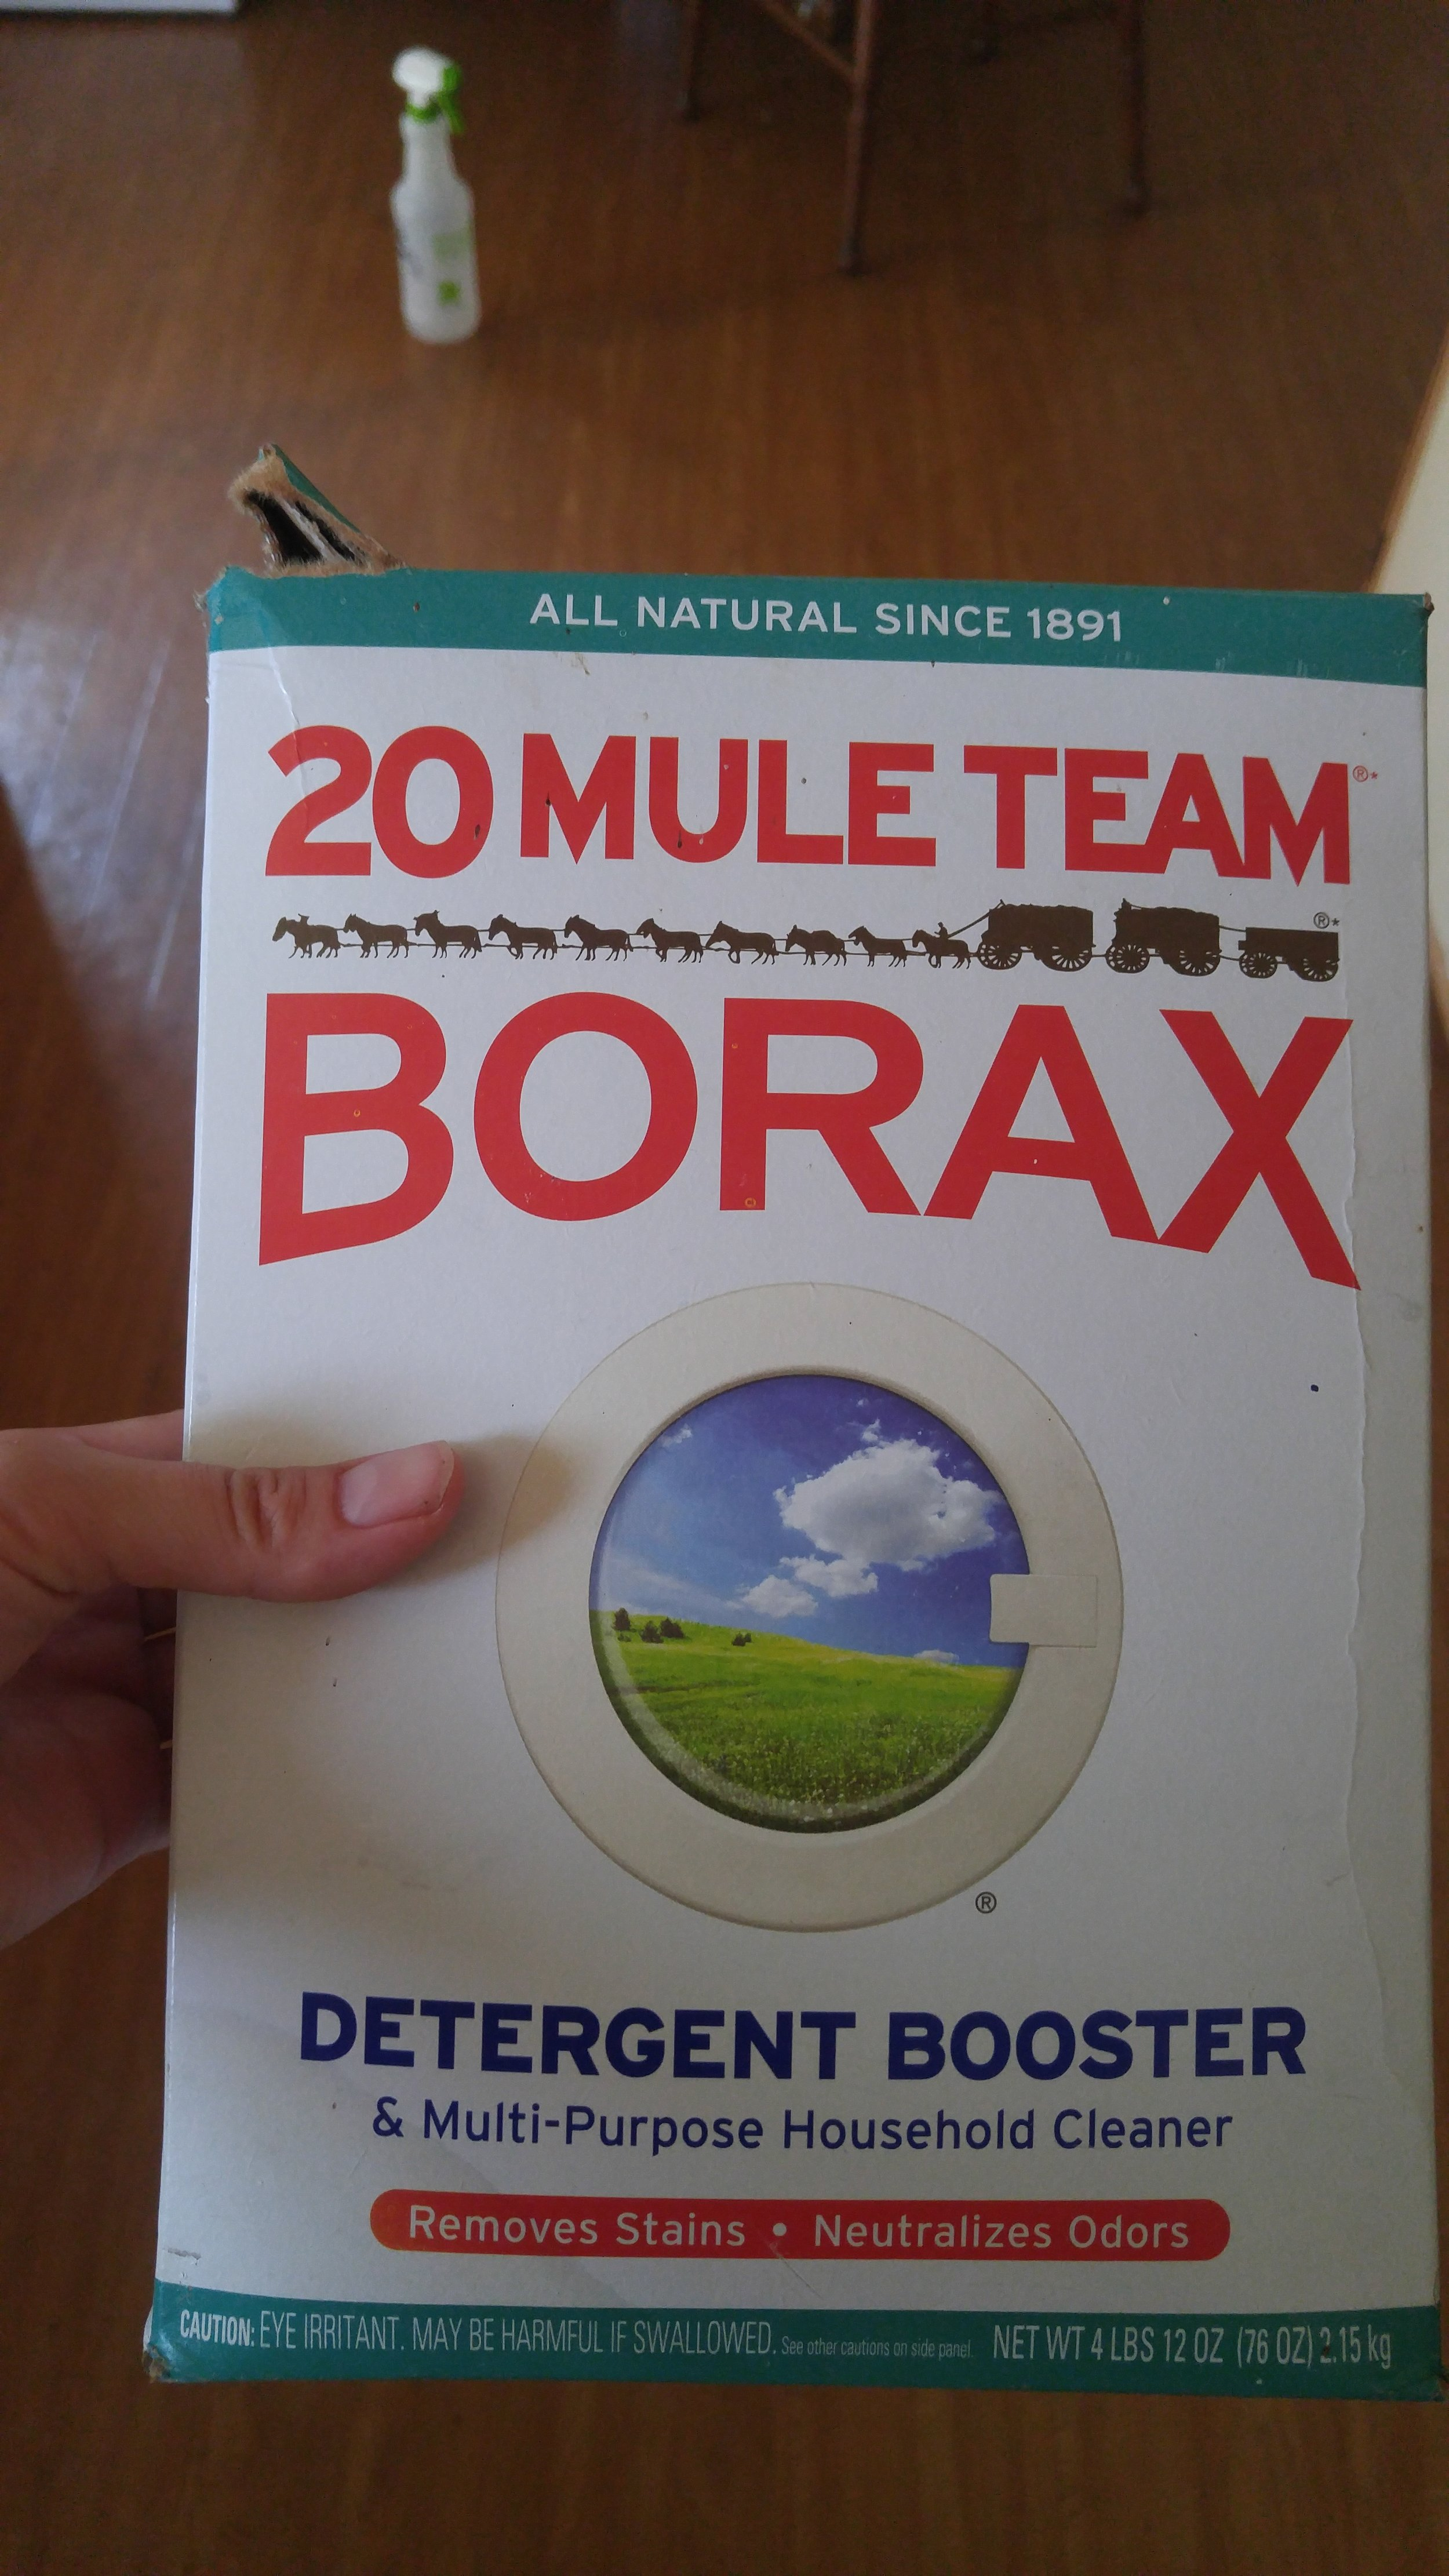 Borax is laundry detergent and can be purchased at most larger stores. If there is too1 much borax mixed into the bait, ants will avoid it.